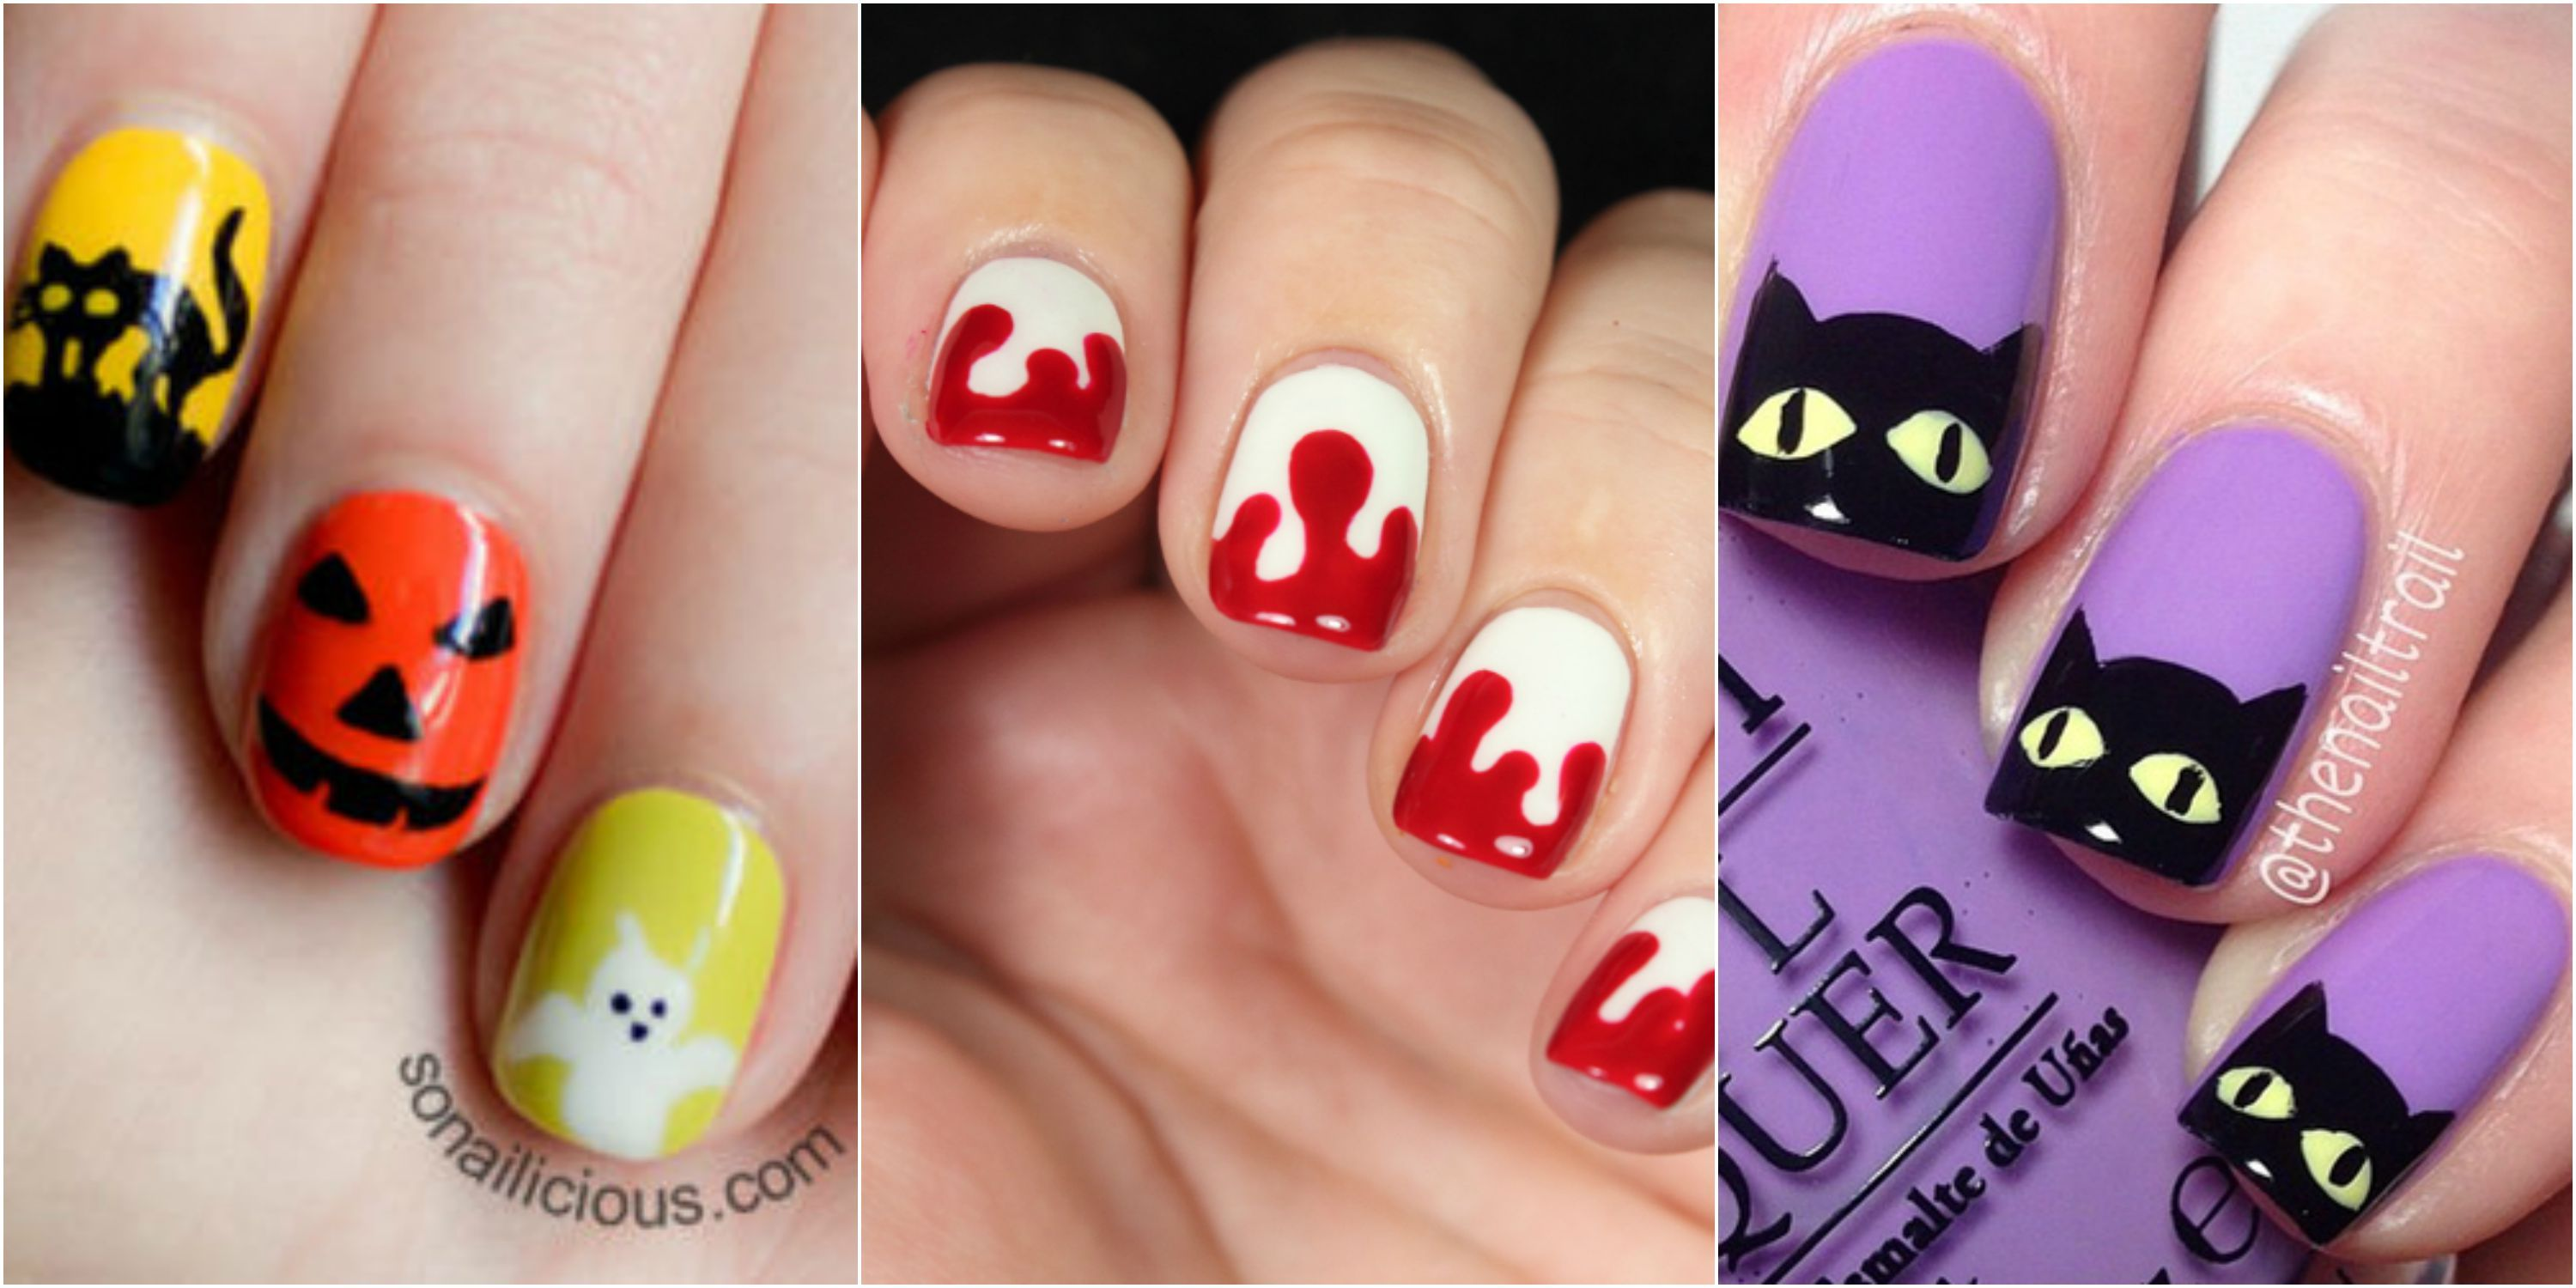 26 Spooktacular Halloween Nail Art Ideas